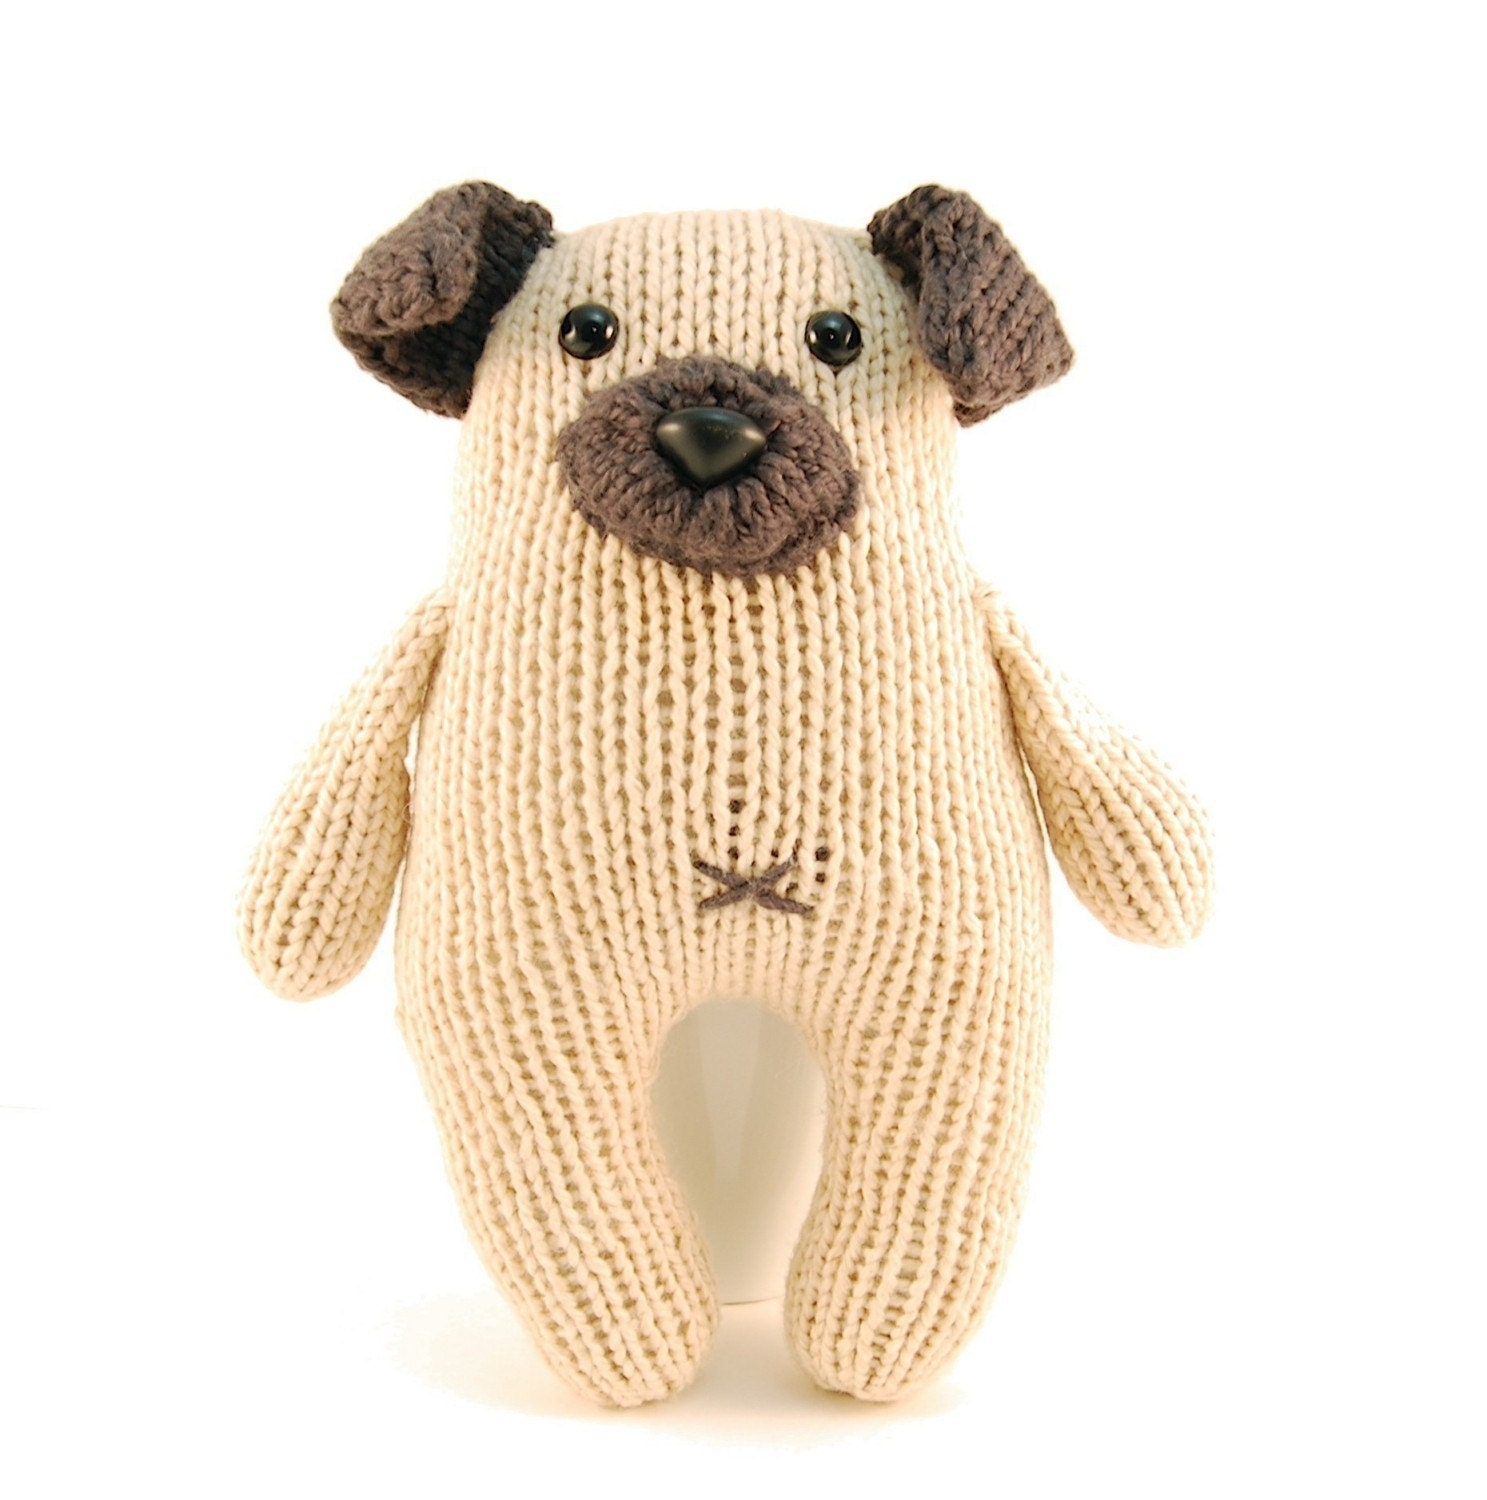 Knitted Pug Pattern : 301 Moved Permanently